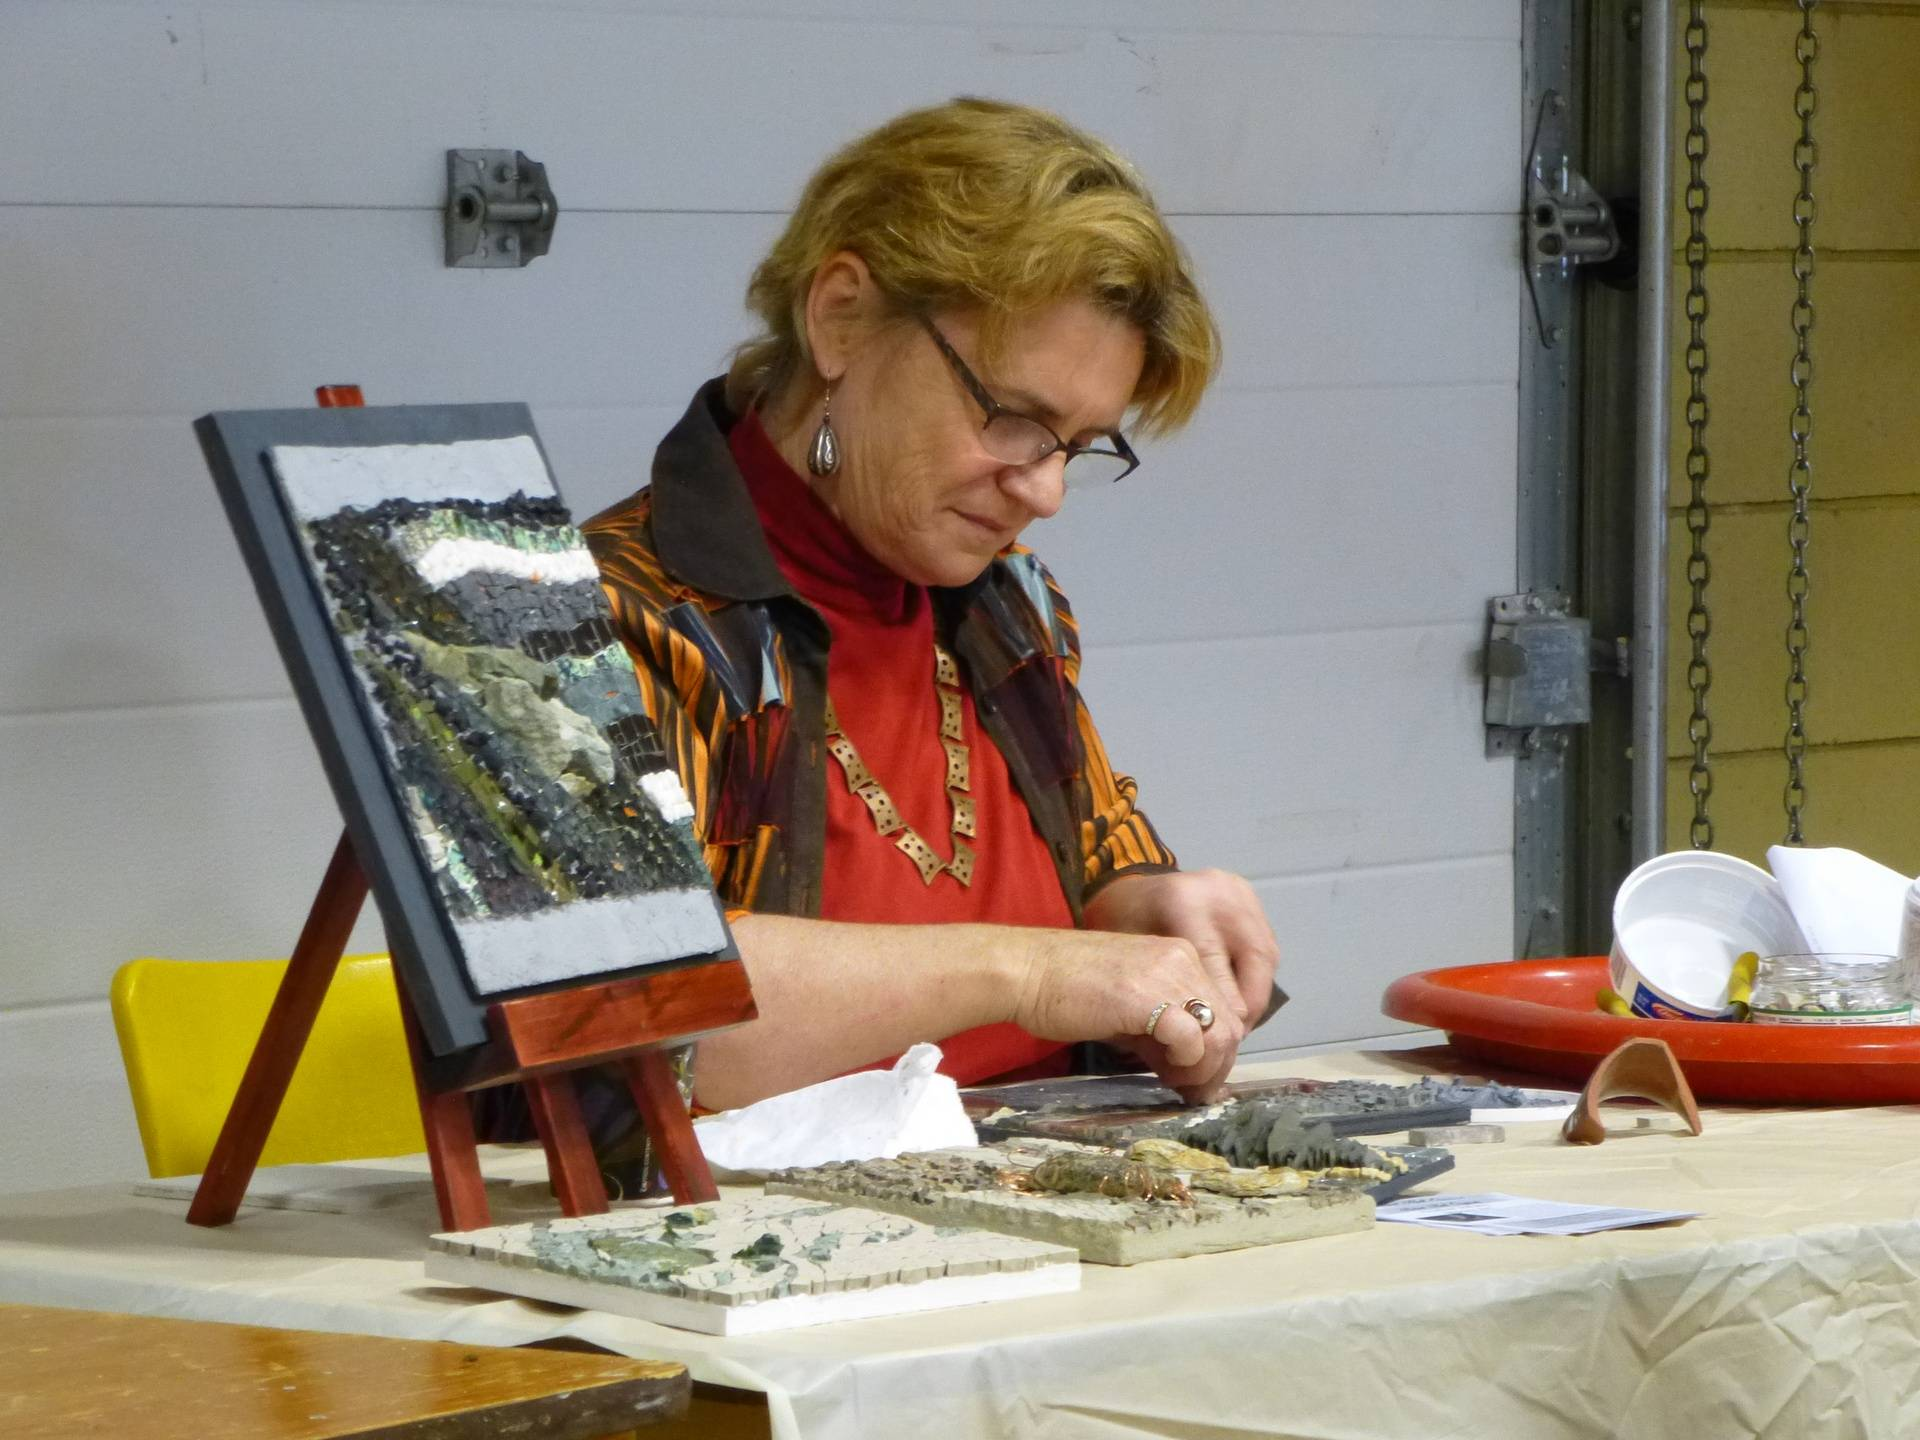 Mosaic Art Demo by Heather Vollans